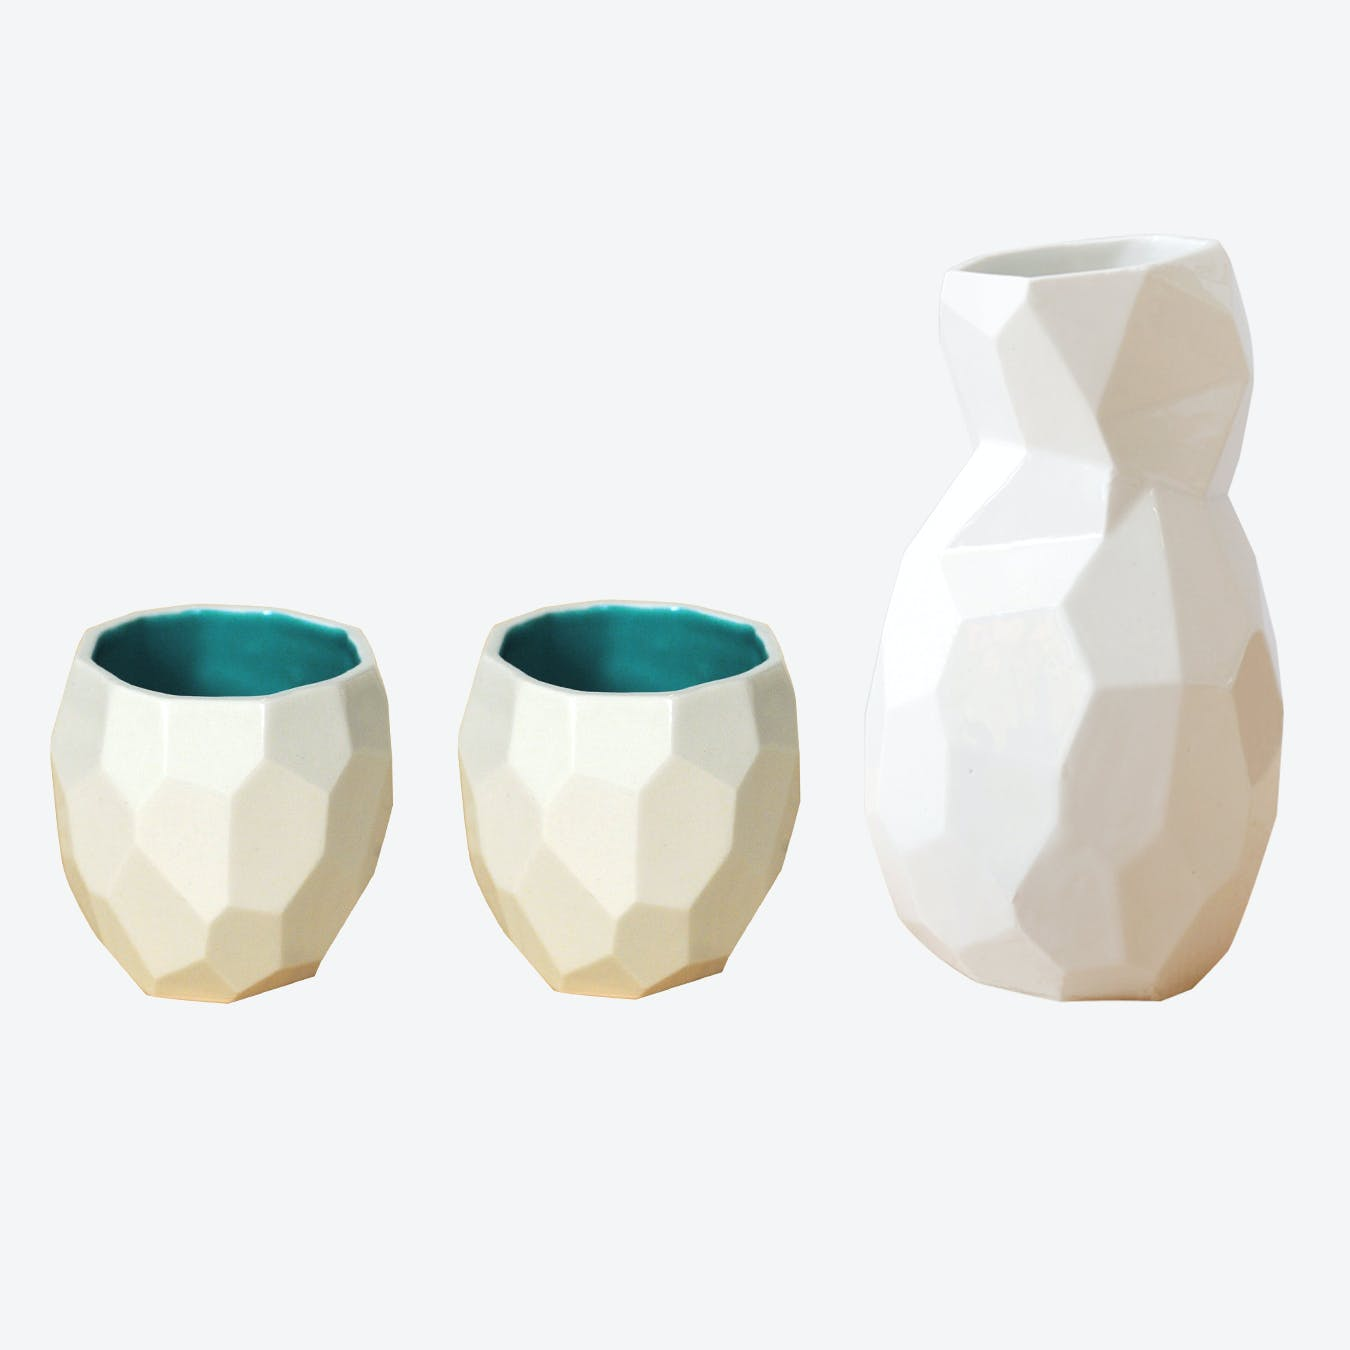 Emerald Green Poligon Sake Set